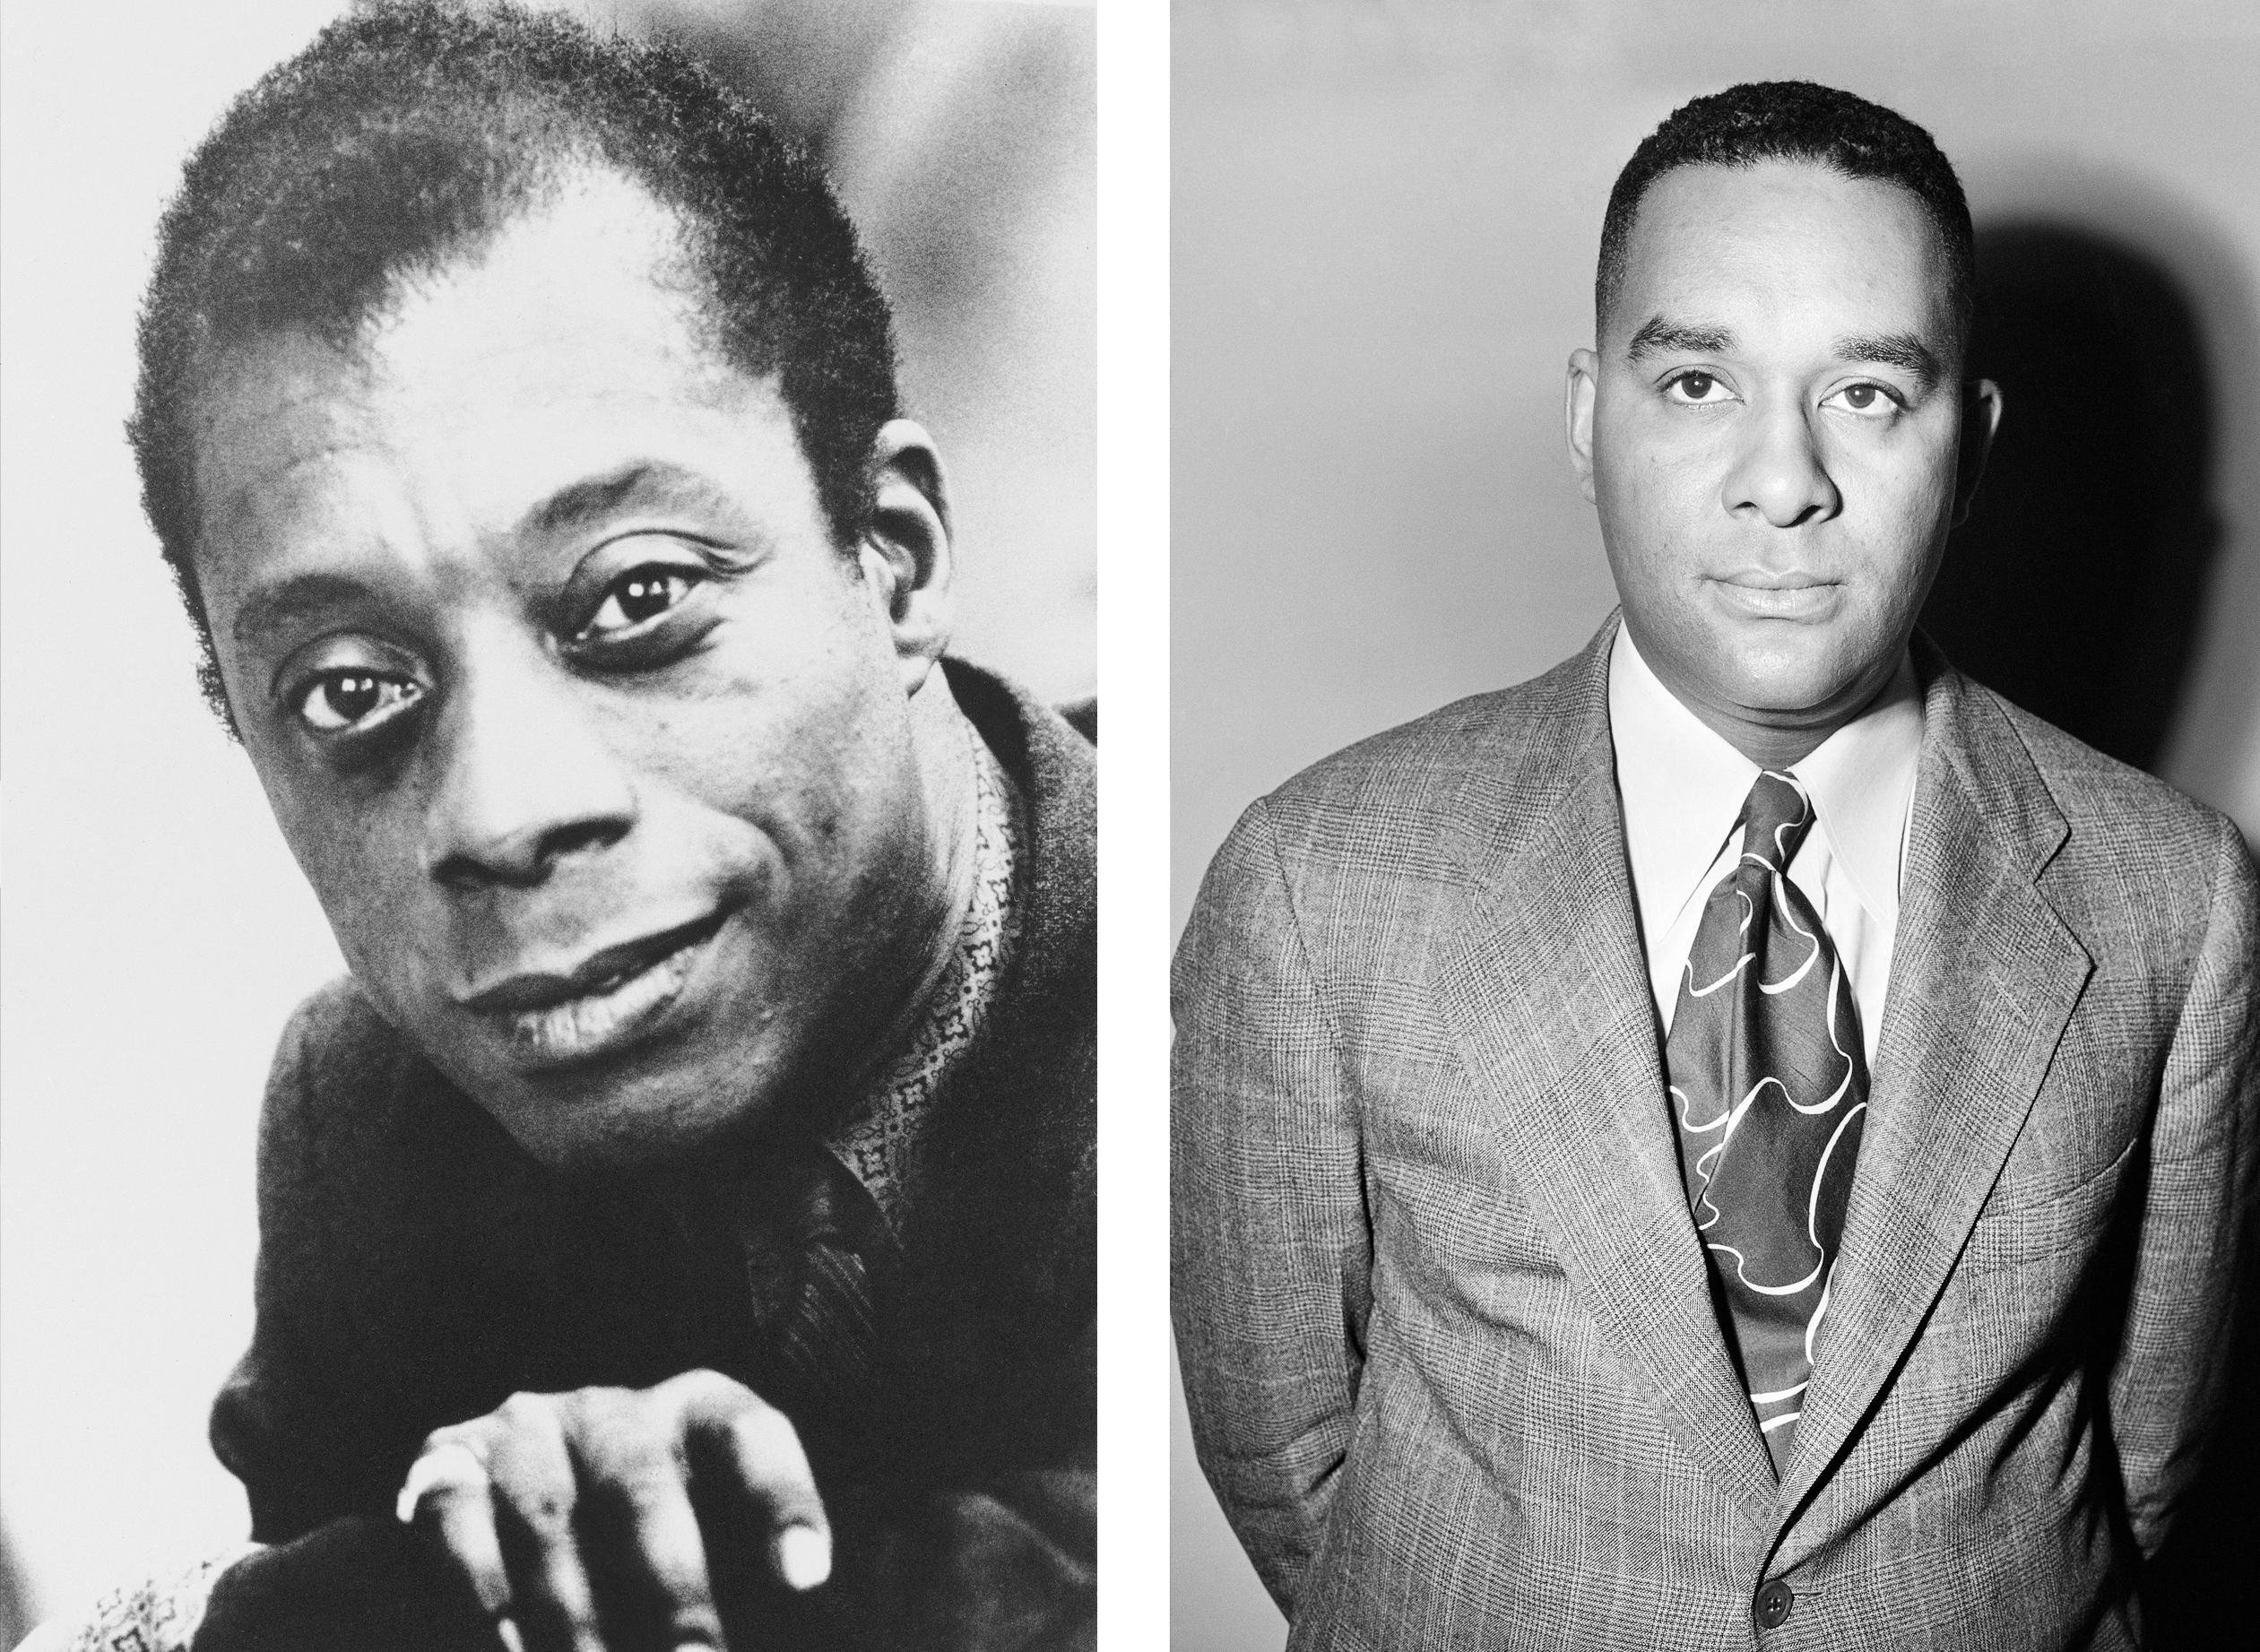 A History Of Beef Between Black Writers, Artists, and Intellectuals